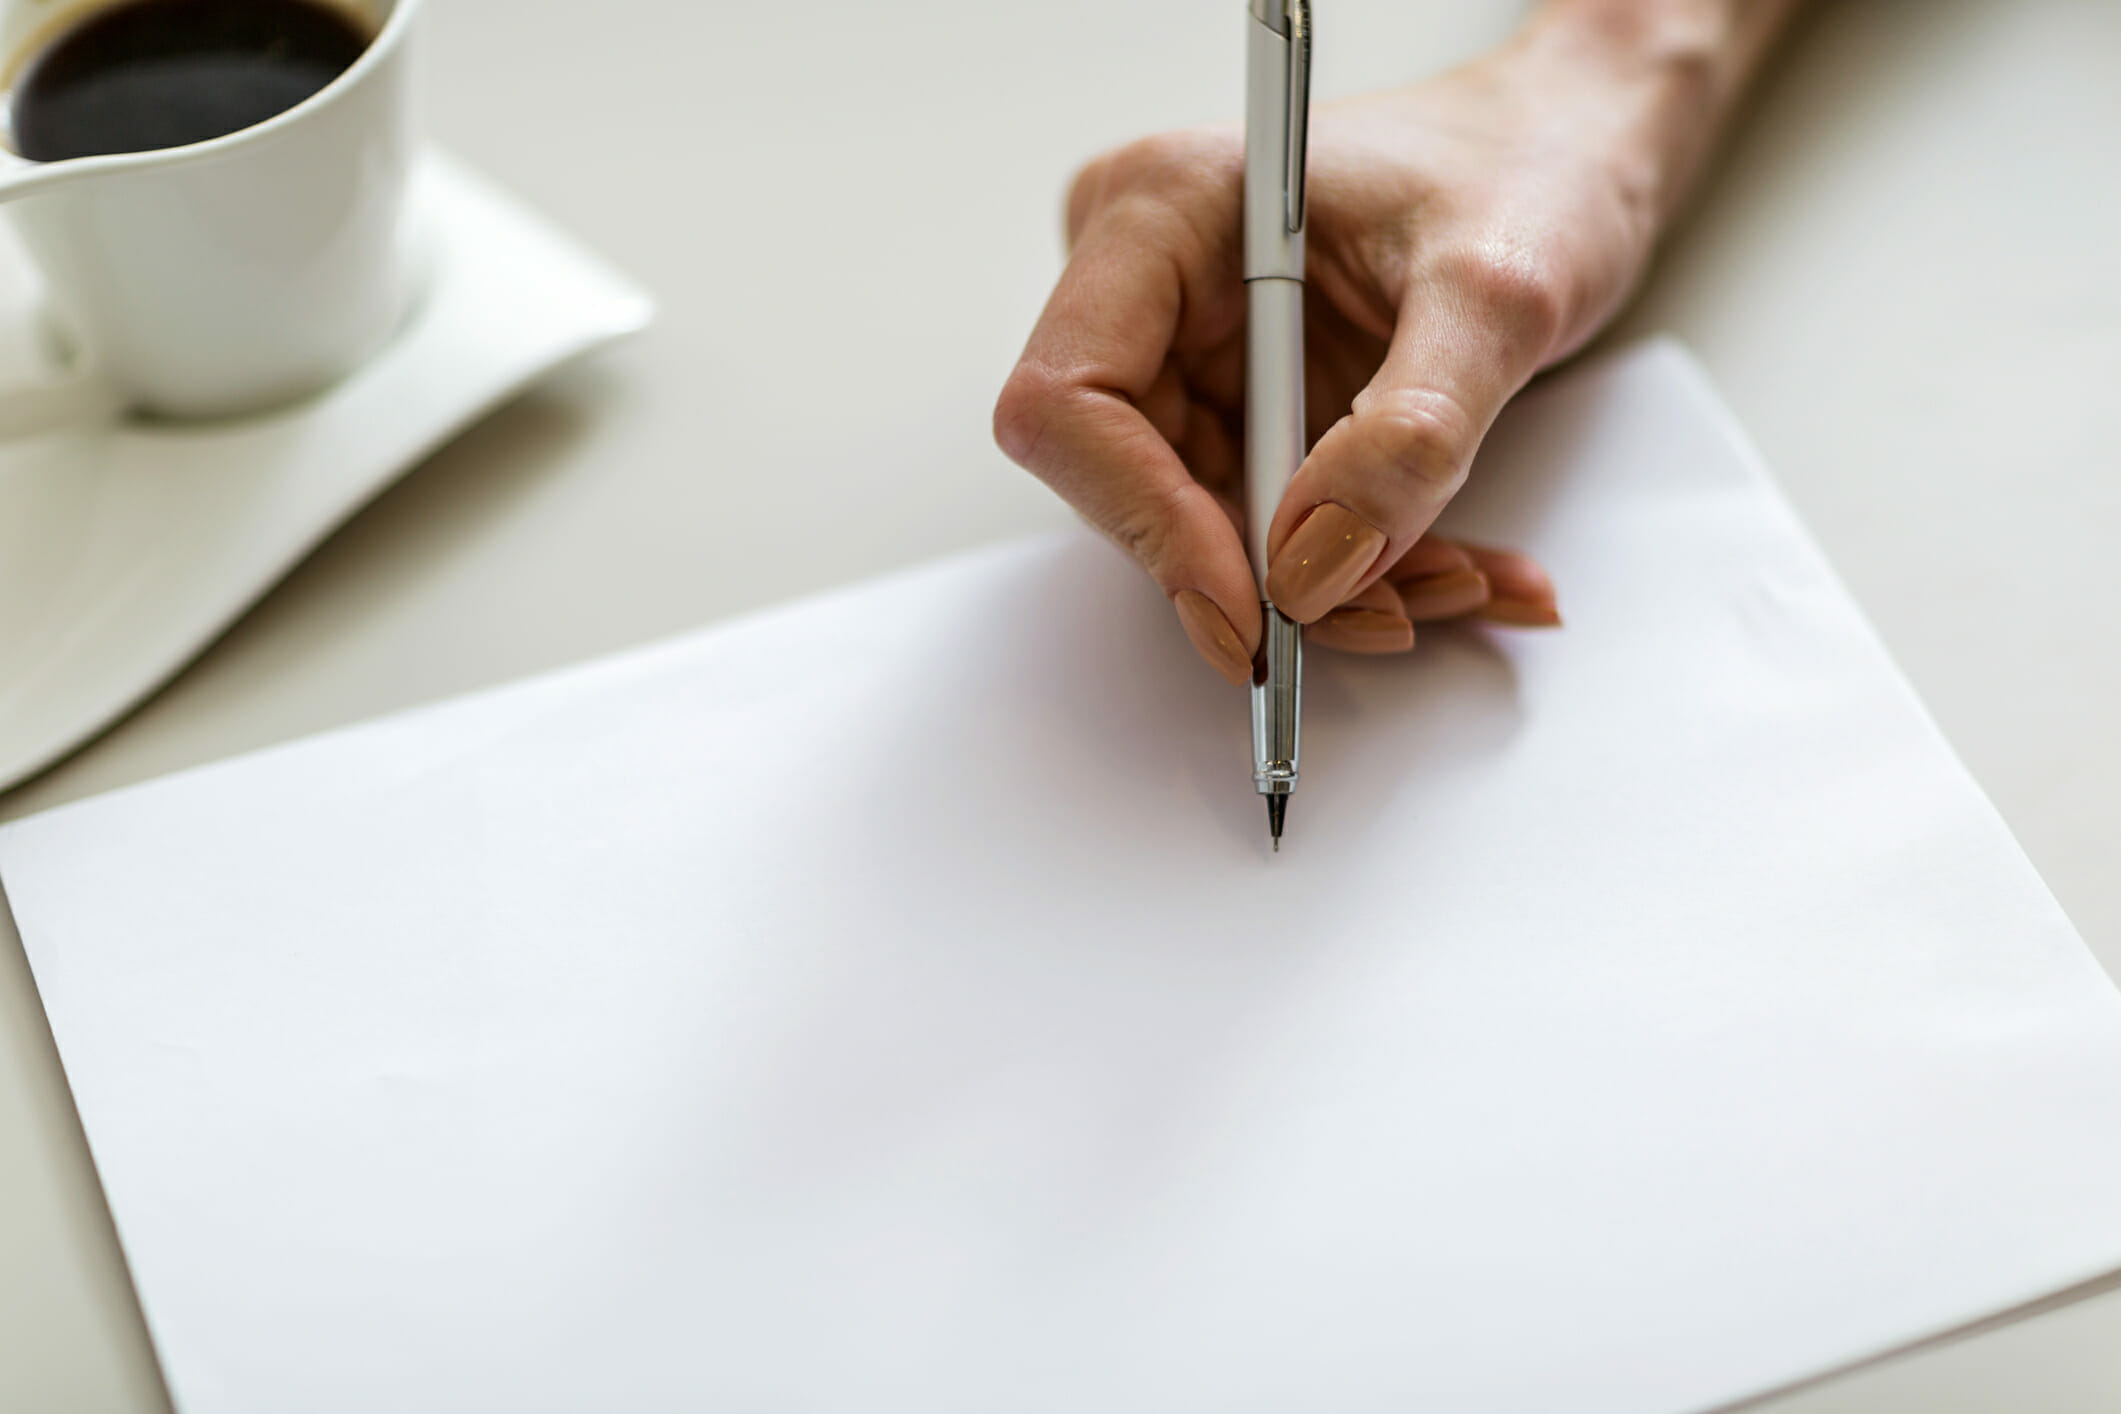 Close-up of female hand writing on blank piece of paper with cup of coffee in background